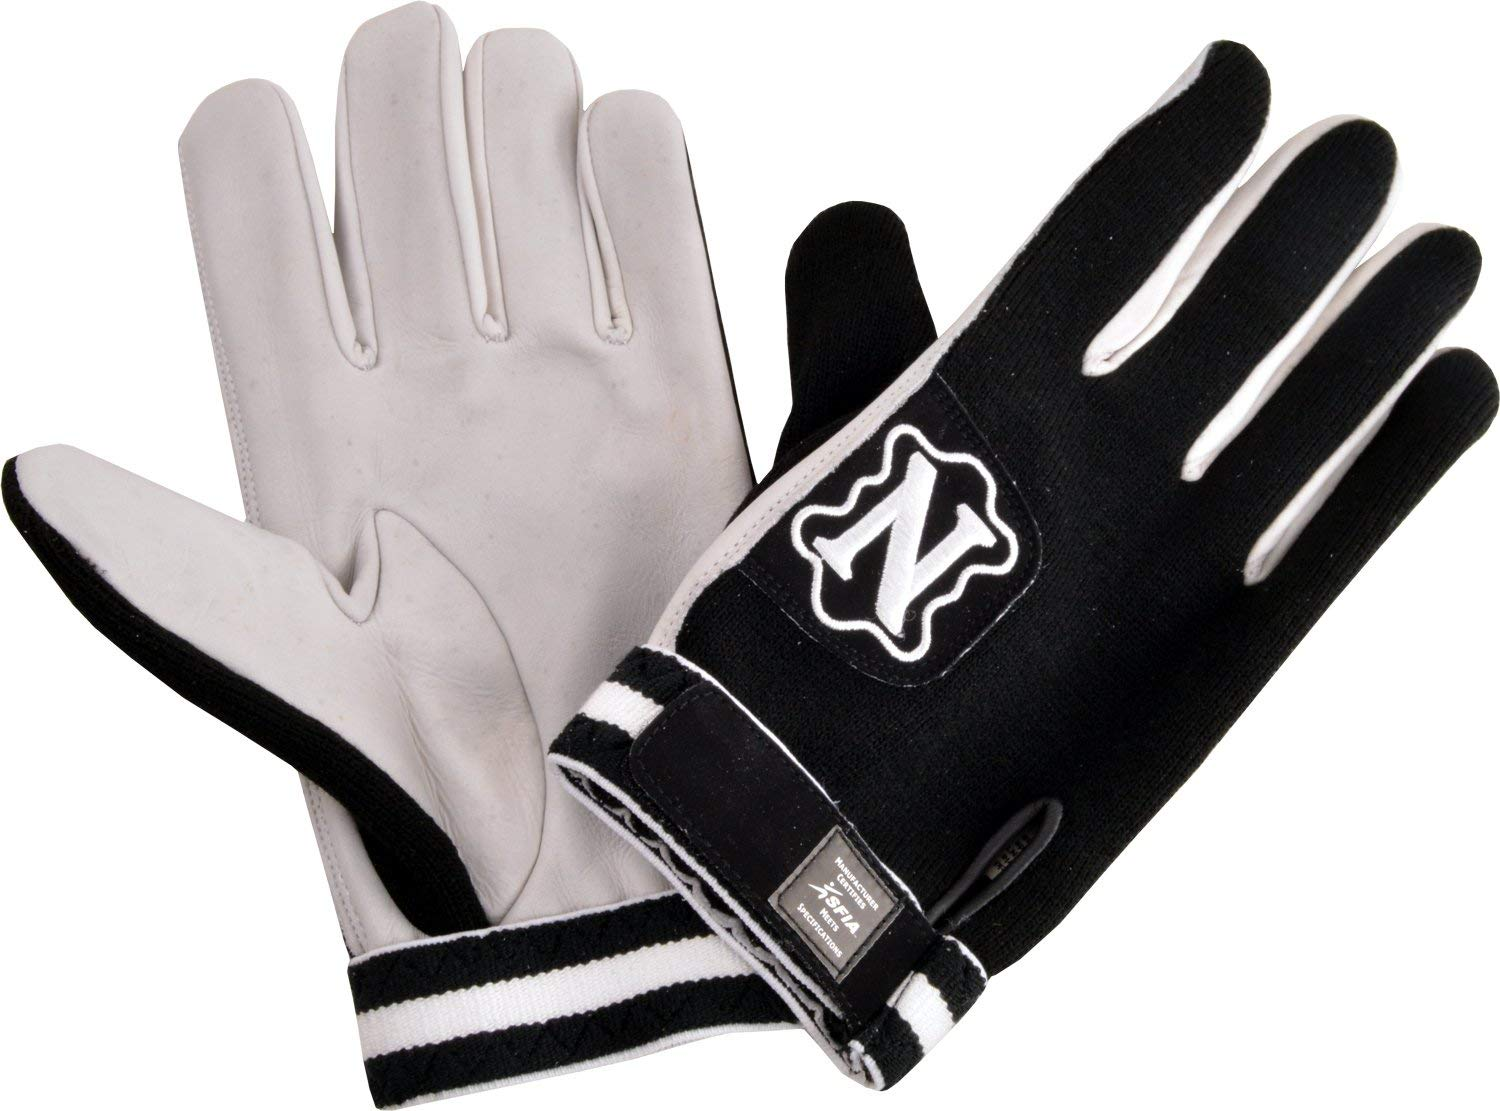 Neumann Rage Wide Receivers Gloves by Adams - Choose Color, Size - Youth or Adult - Battle Football Receiver Gloves